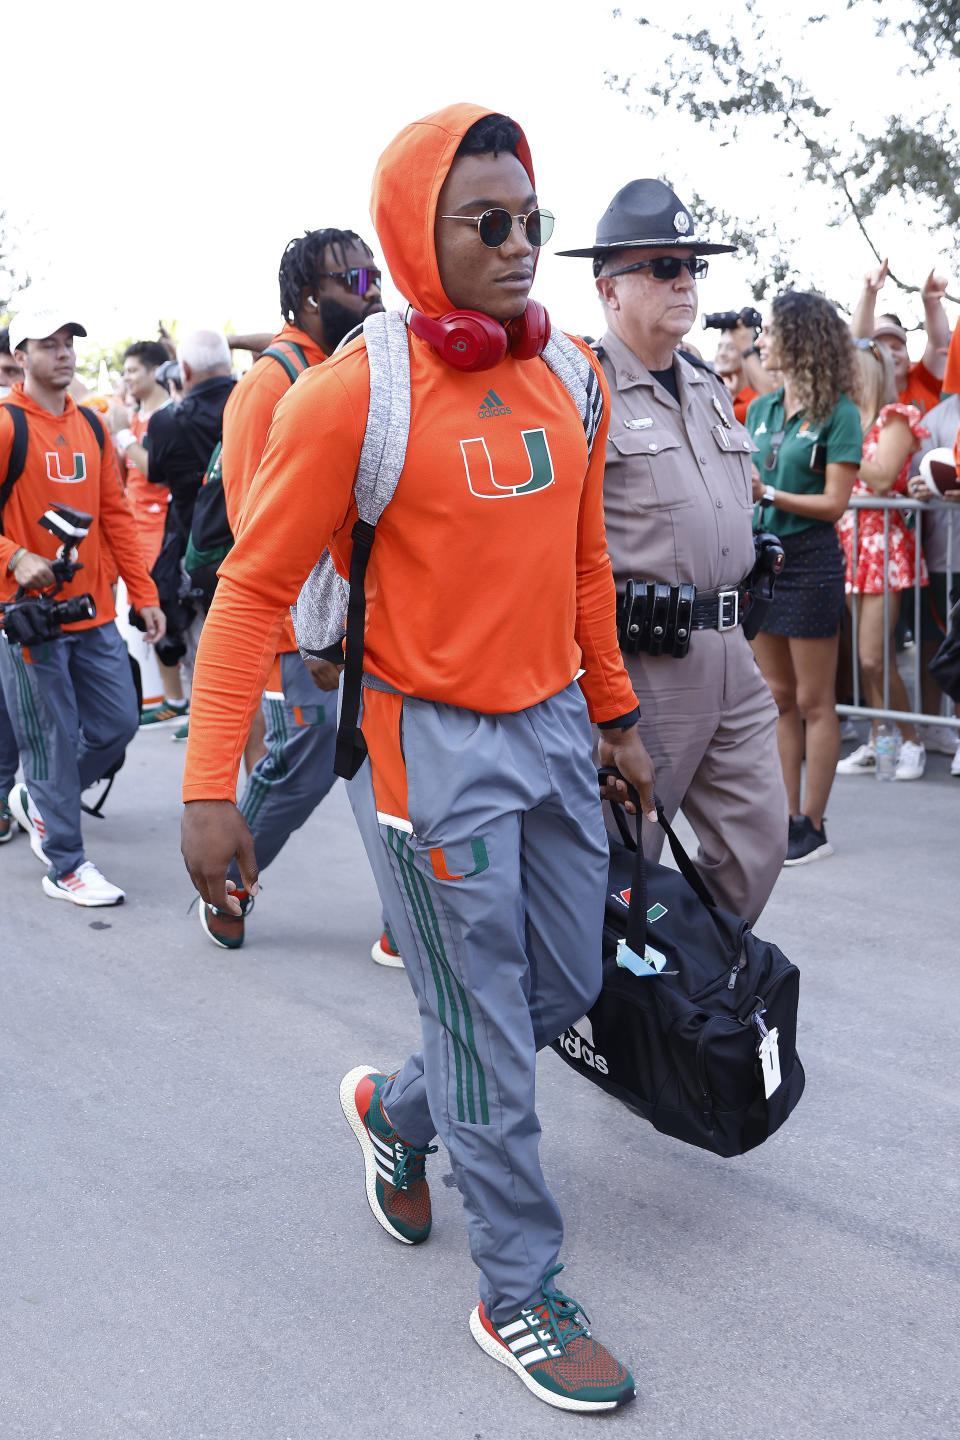 Miami Hurricanes quarterback D'Eriq King (1) arrives on the Hurricane Walk before the start of an NCAA college football game against Michigan State, Saturday, Sept. 18, 2021, in Miami Gardens, Fla. (AP Photo/Michael Reaves)